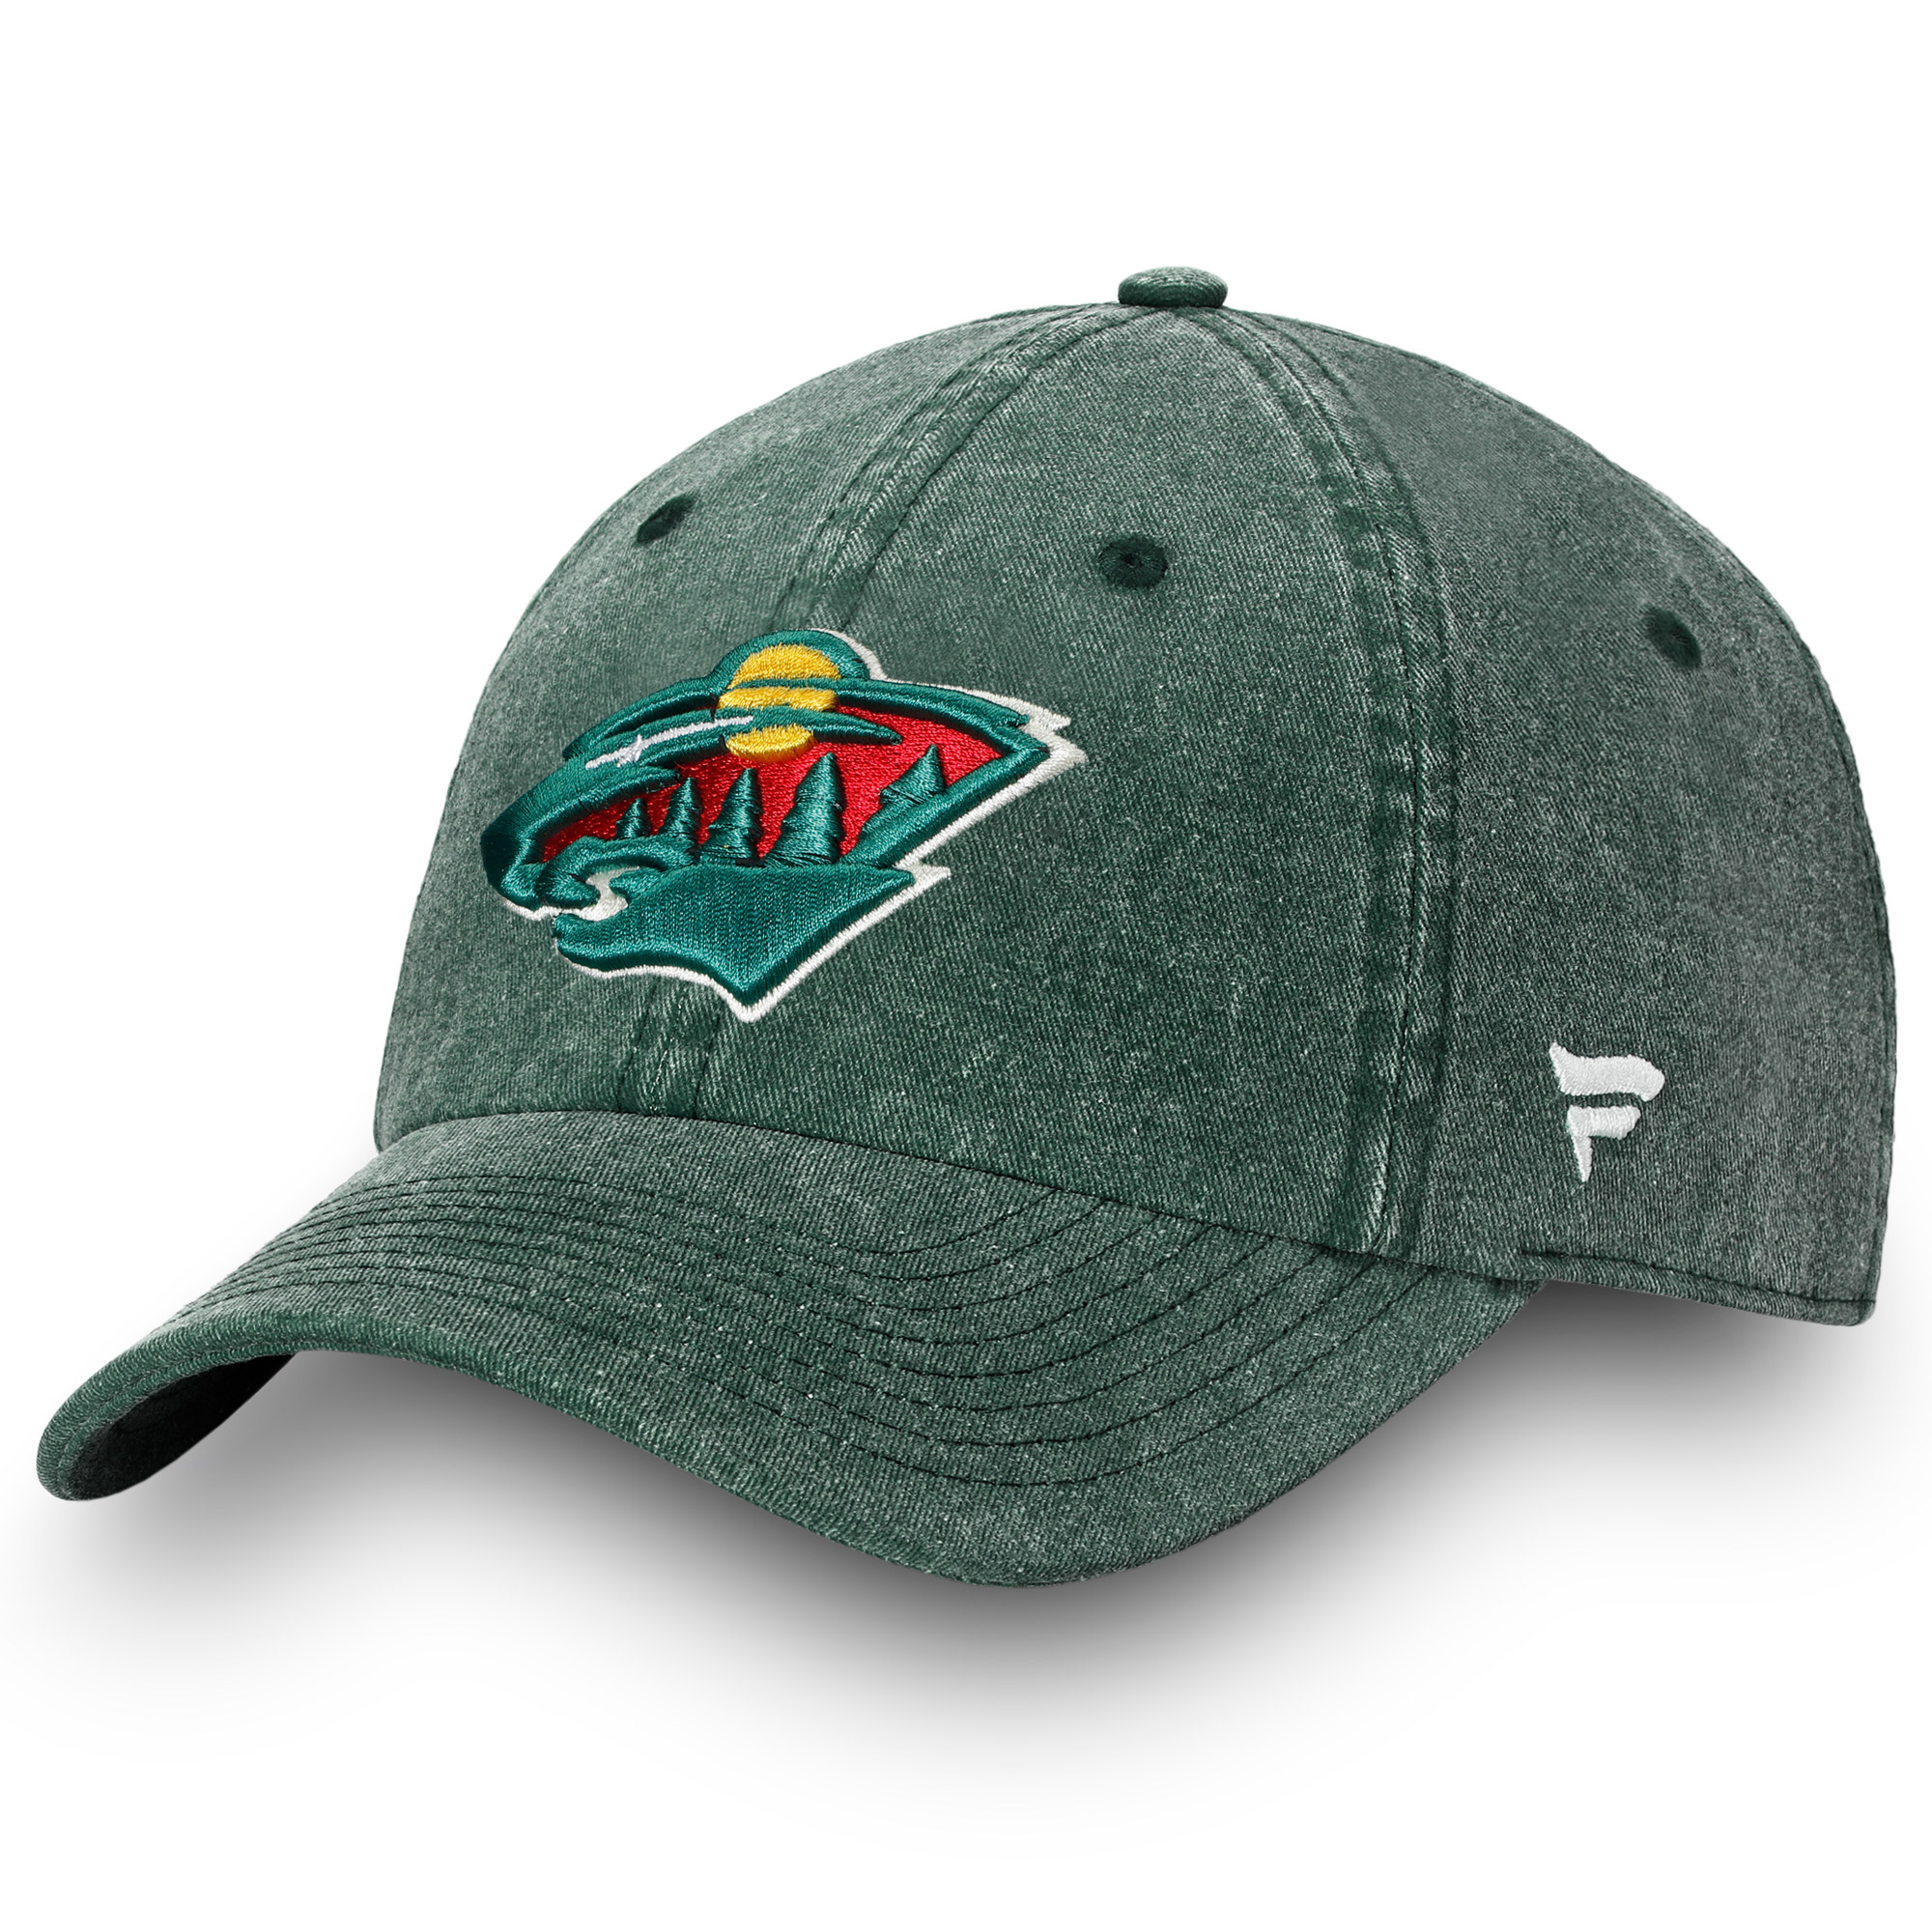 Minnesota Wild Fanatics Branded Timeless Fundamental Adjustable Hat - Green - OSFA